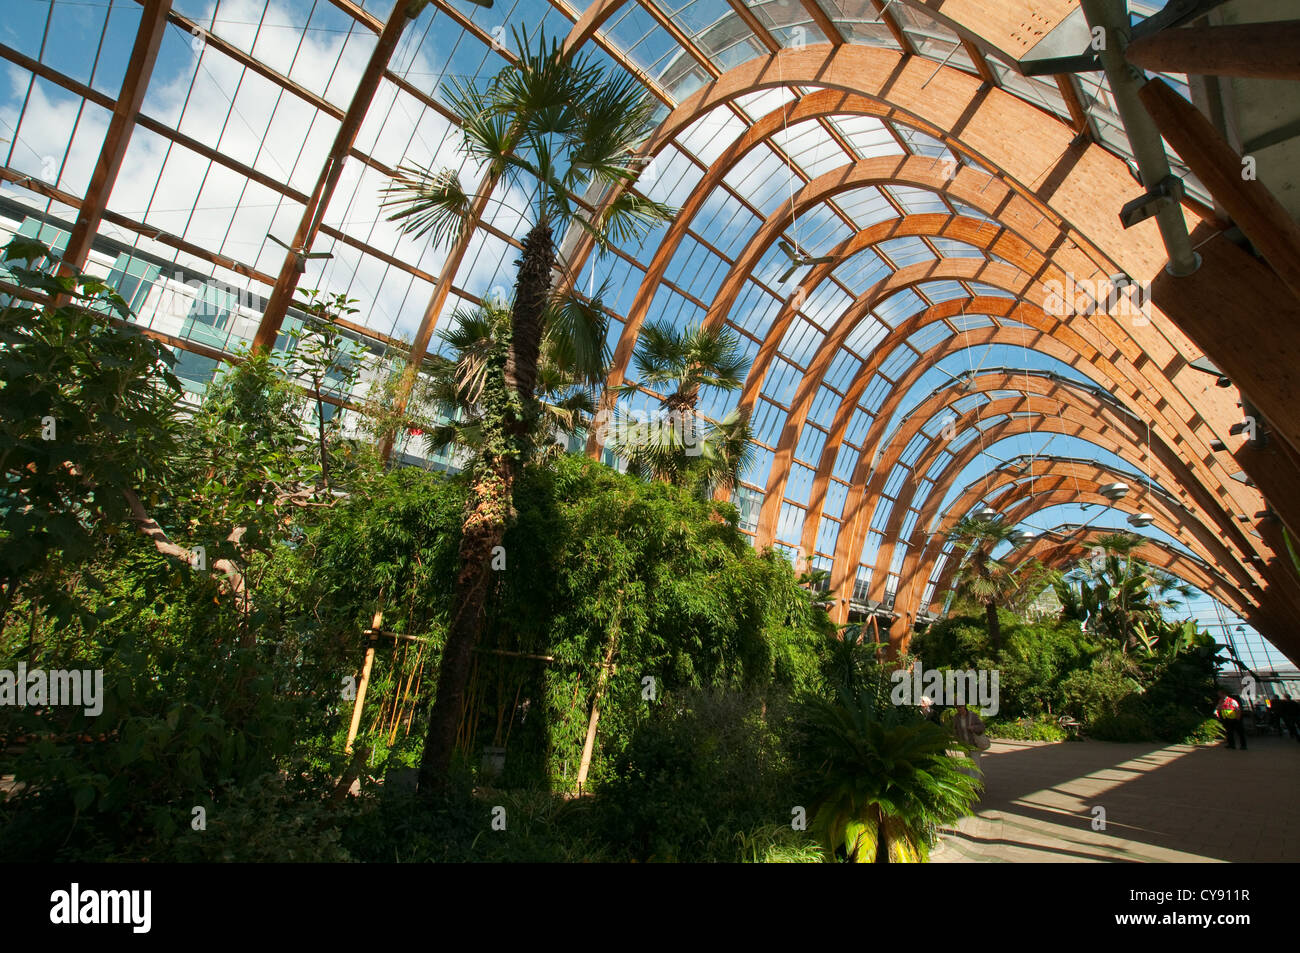 the winter gardens in sheffield city centre south yorkshire uk